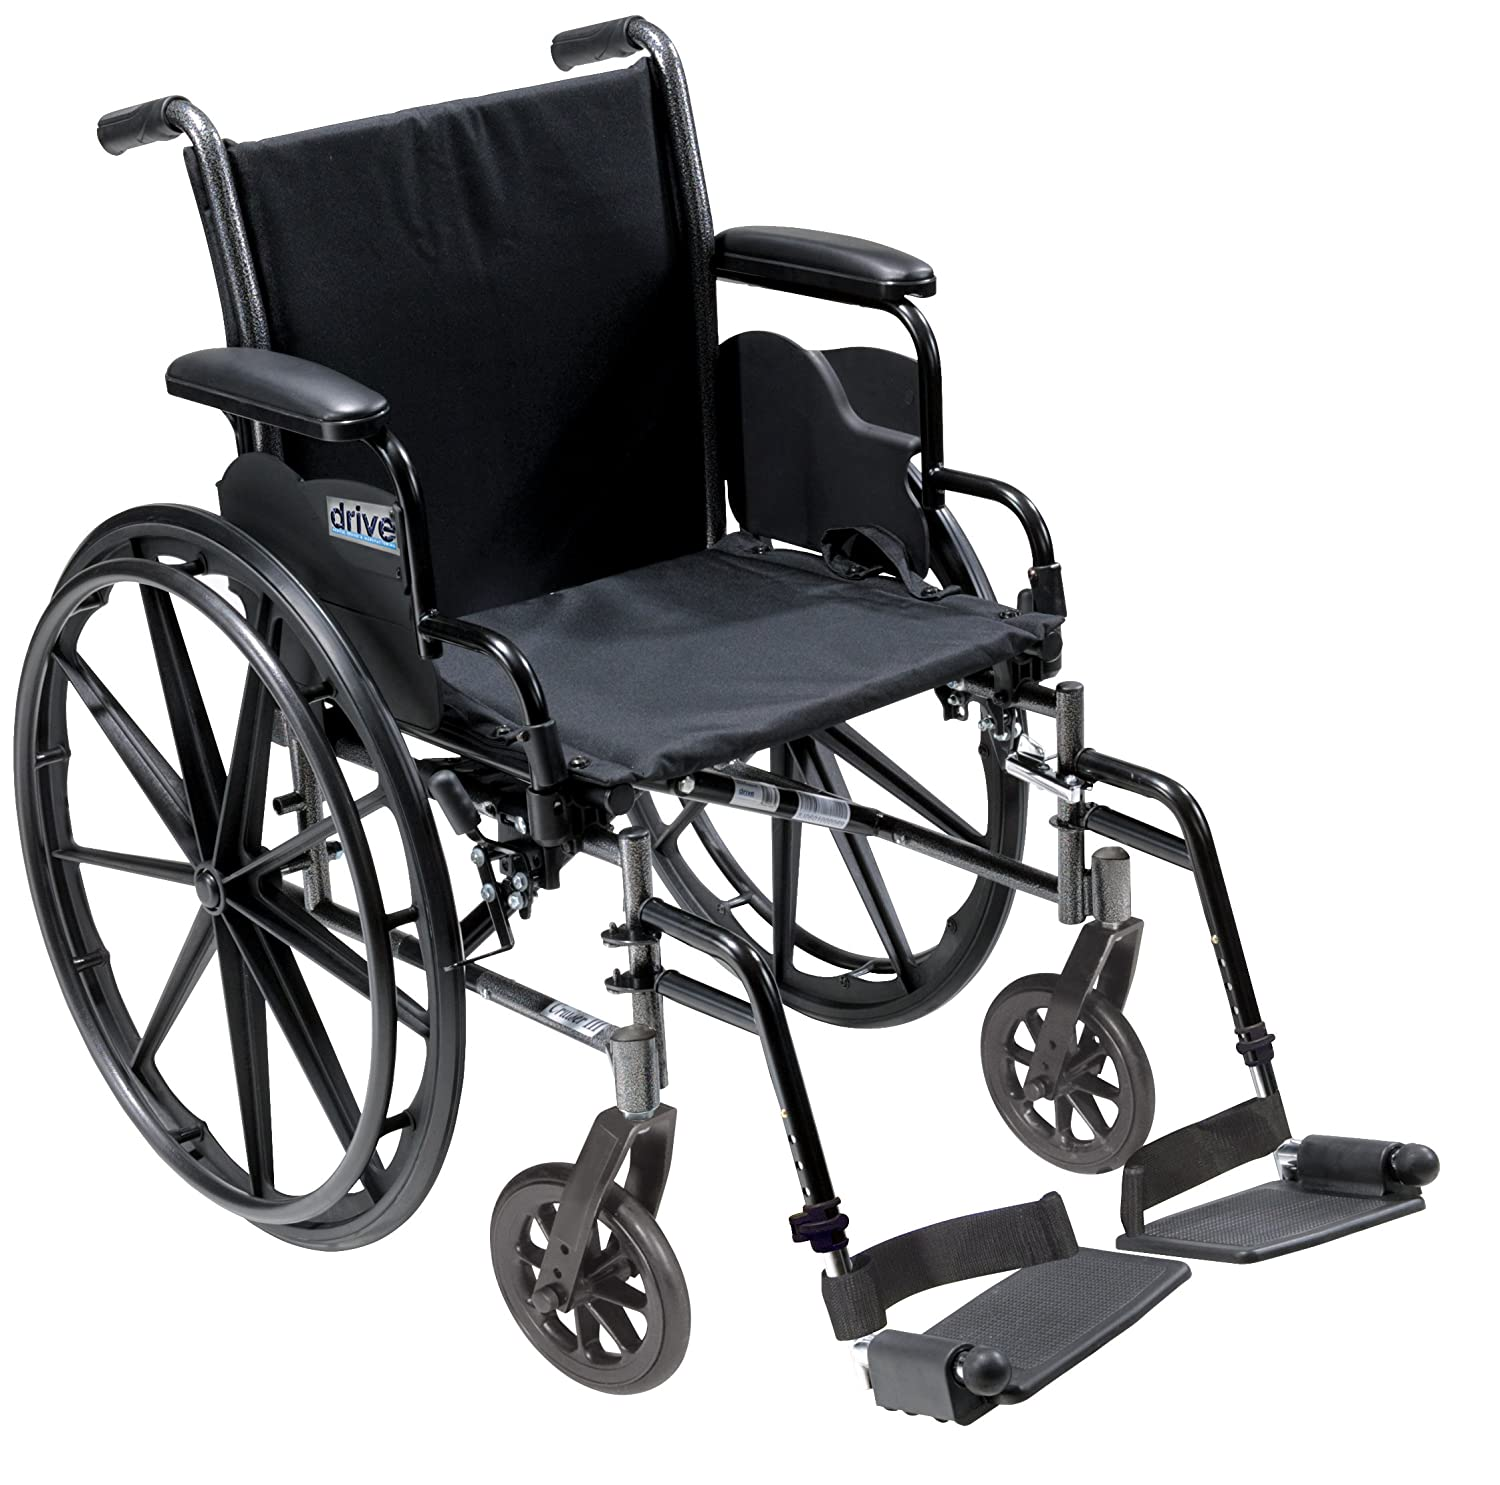 Drive Medical Cruiser III Light Weight Wheelchair with Various Flip Back Arm Styles and Front Rigging Options, Black, 16""